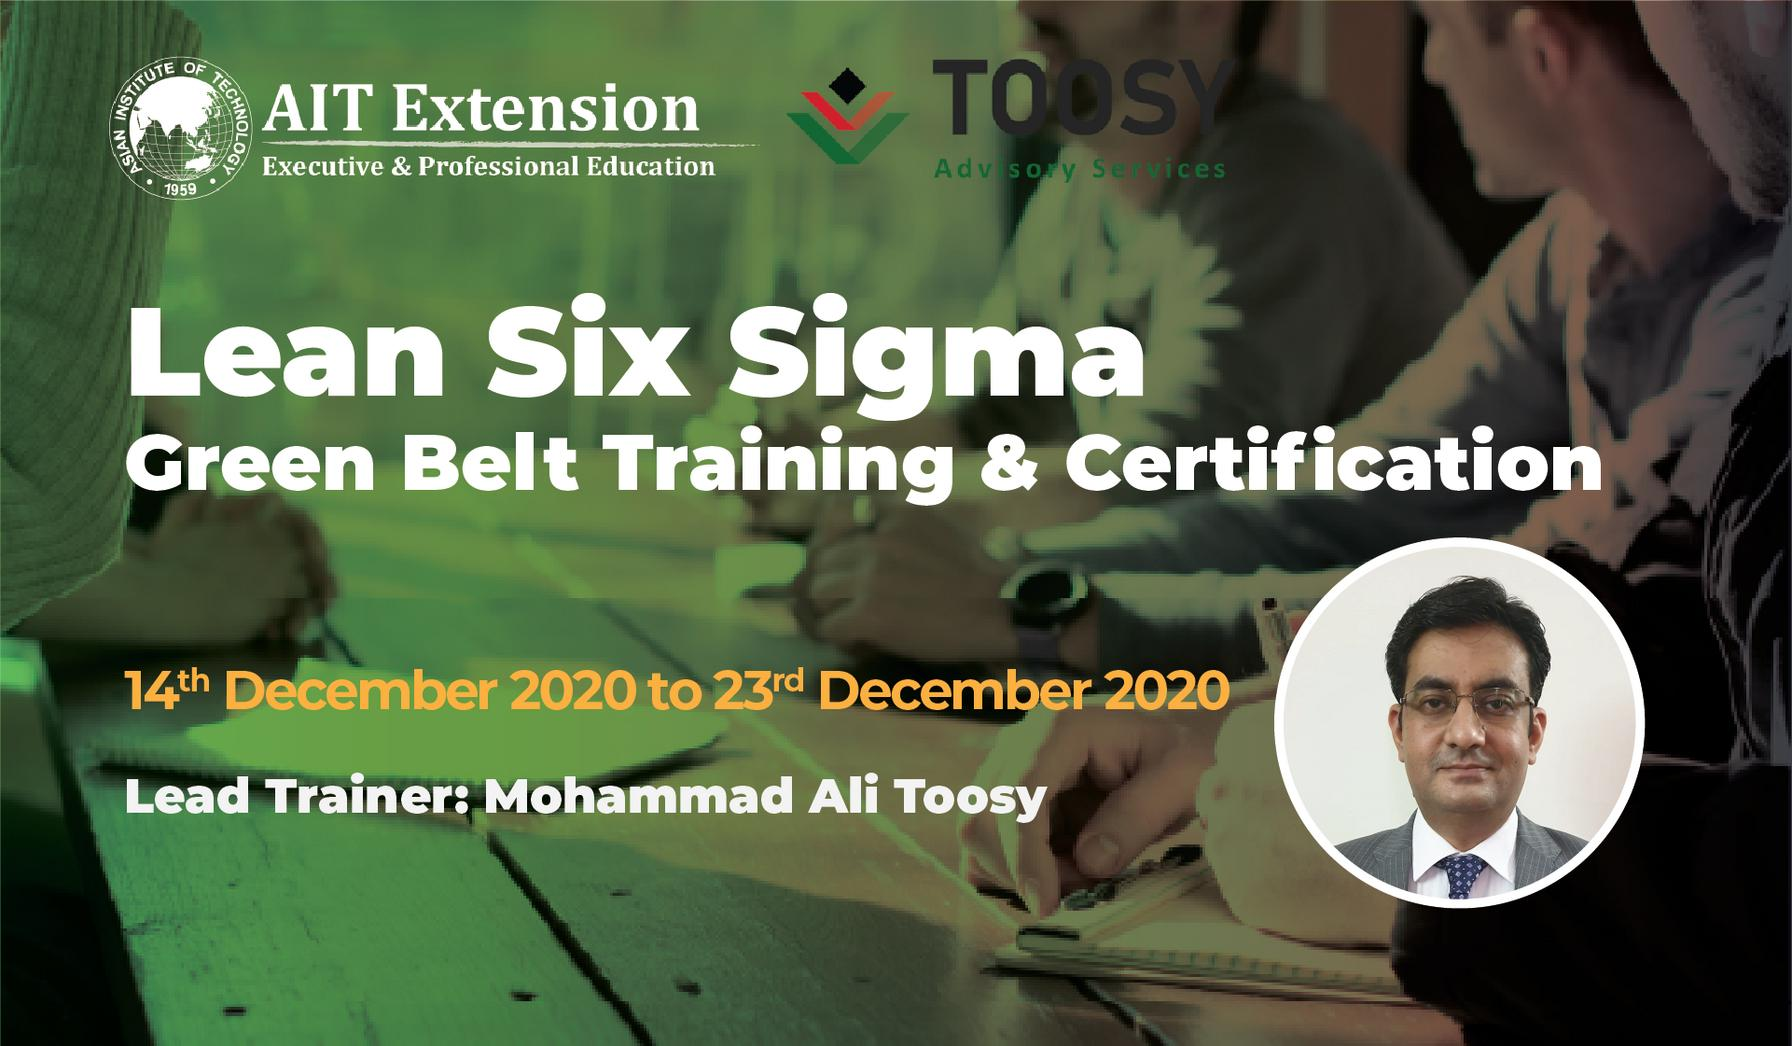 3-Lean Six Sigma Green Belt_Banner_14 Dec- 23 Dec 2020